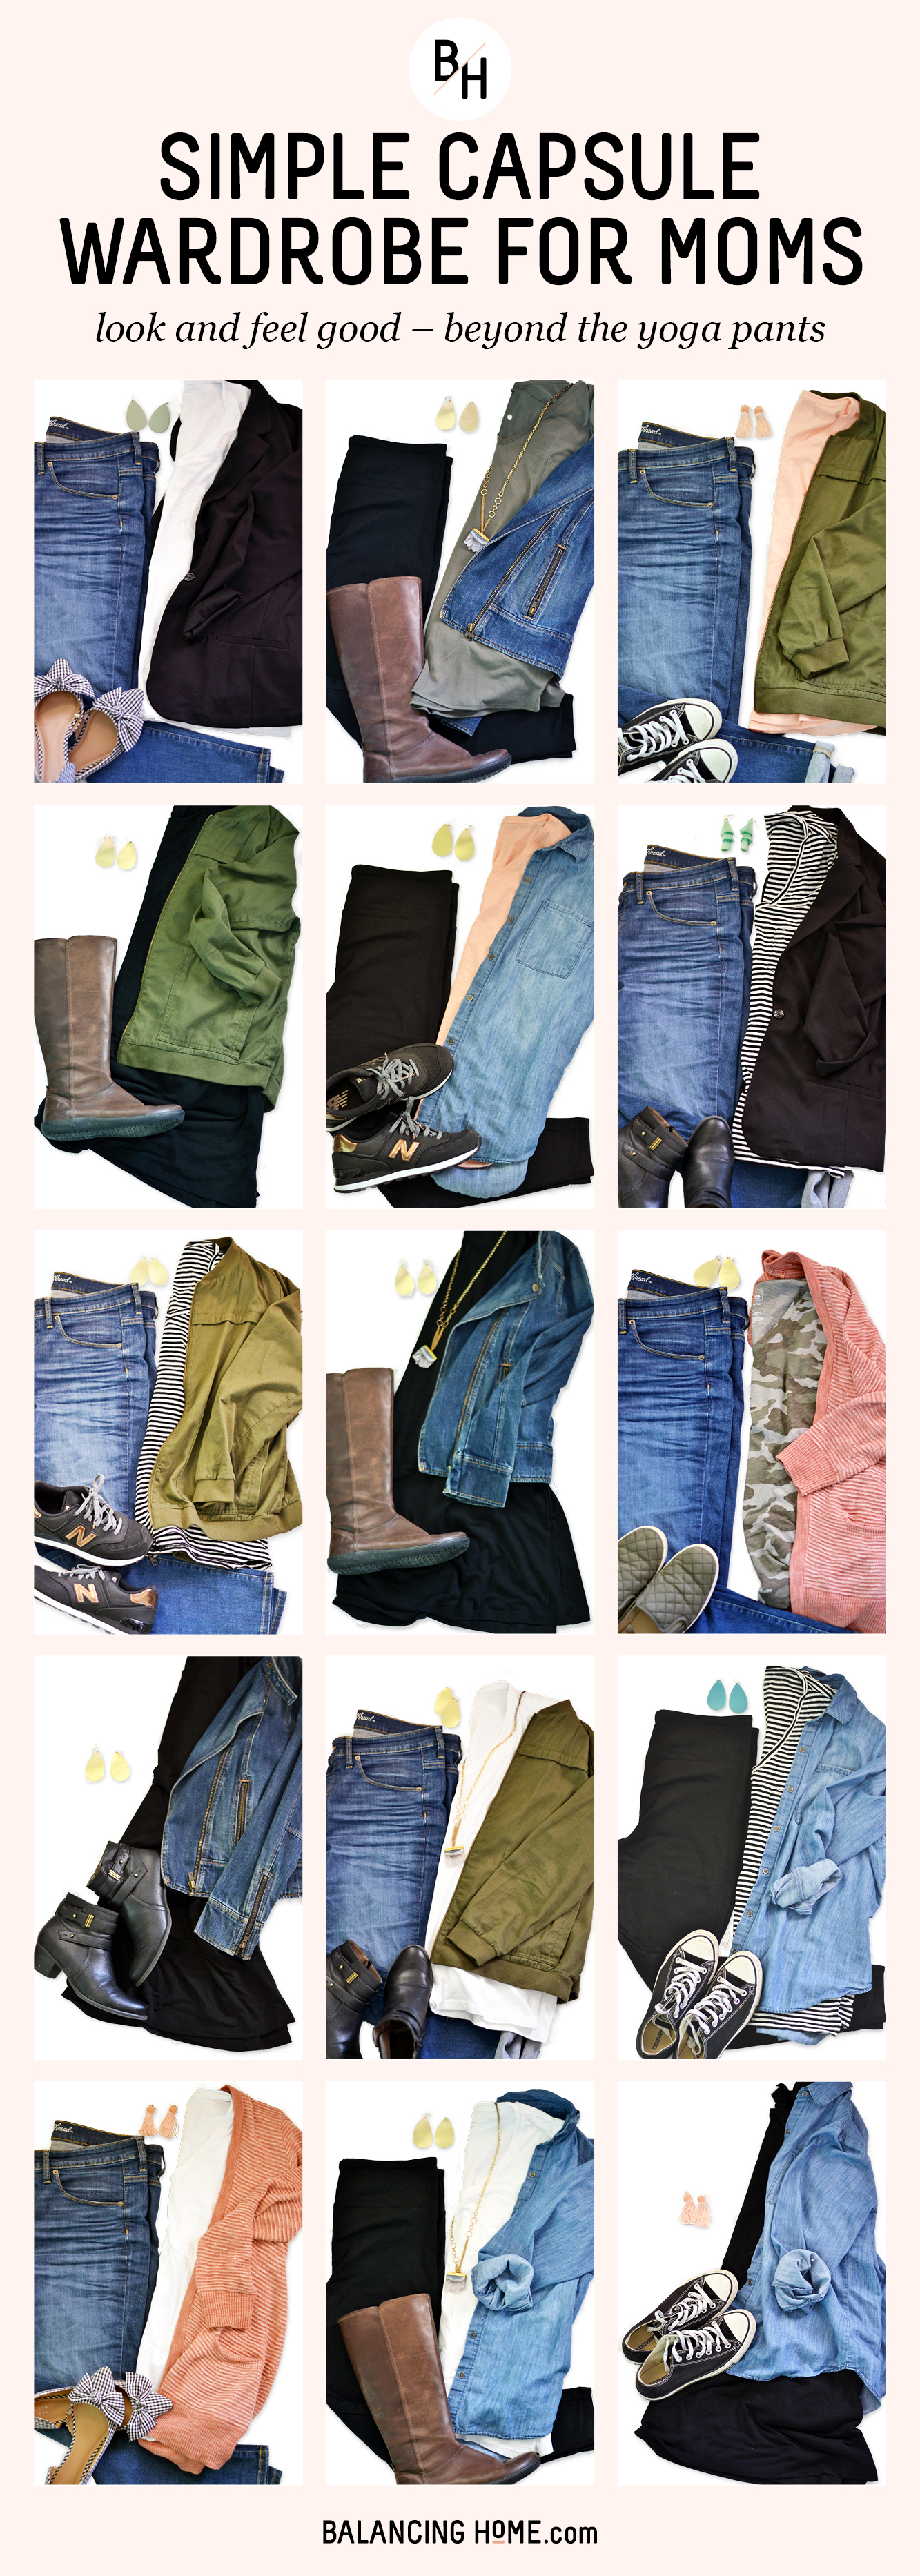 Simple Capsule wardrobe for moms. Look good and feel good with a few basics.